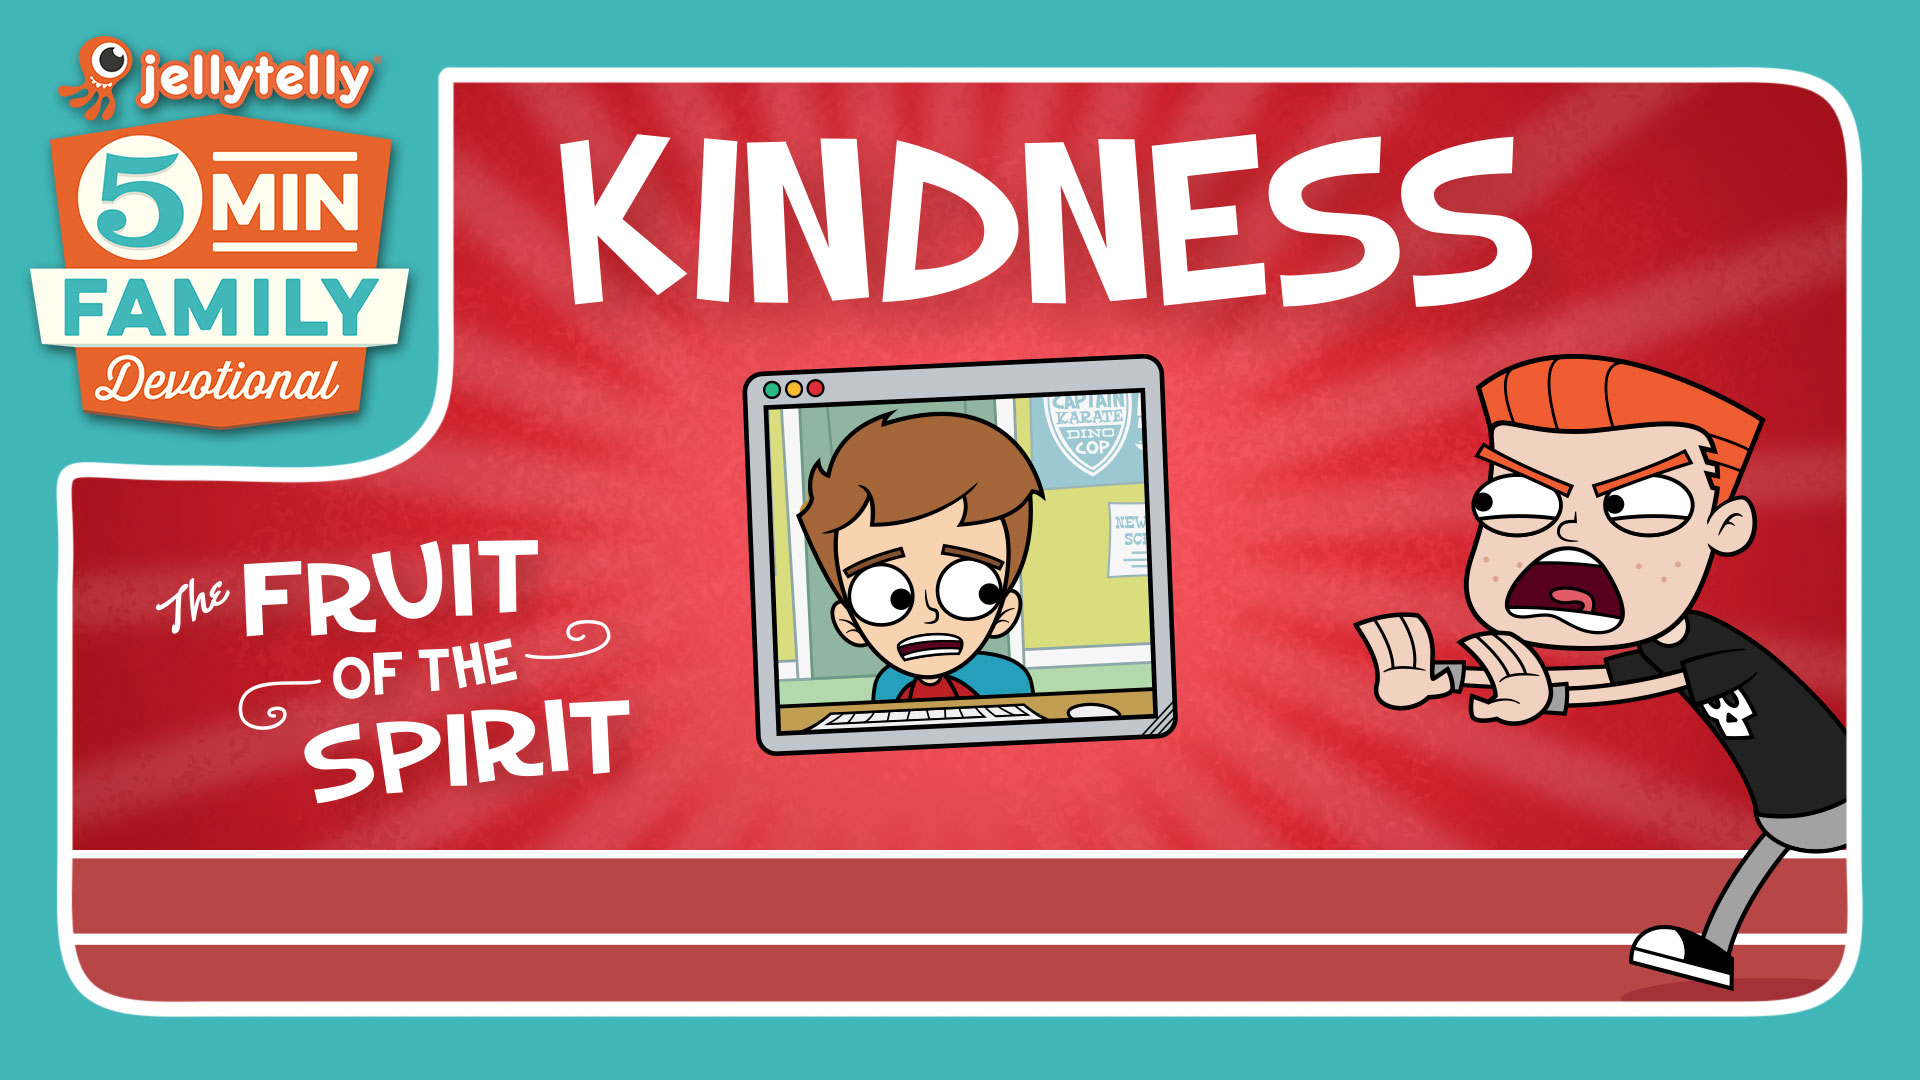 5mfd msv fots 05 kindness preview image